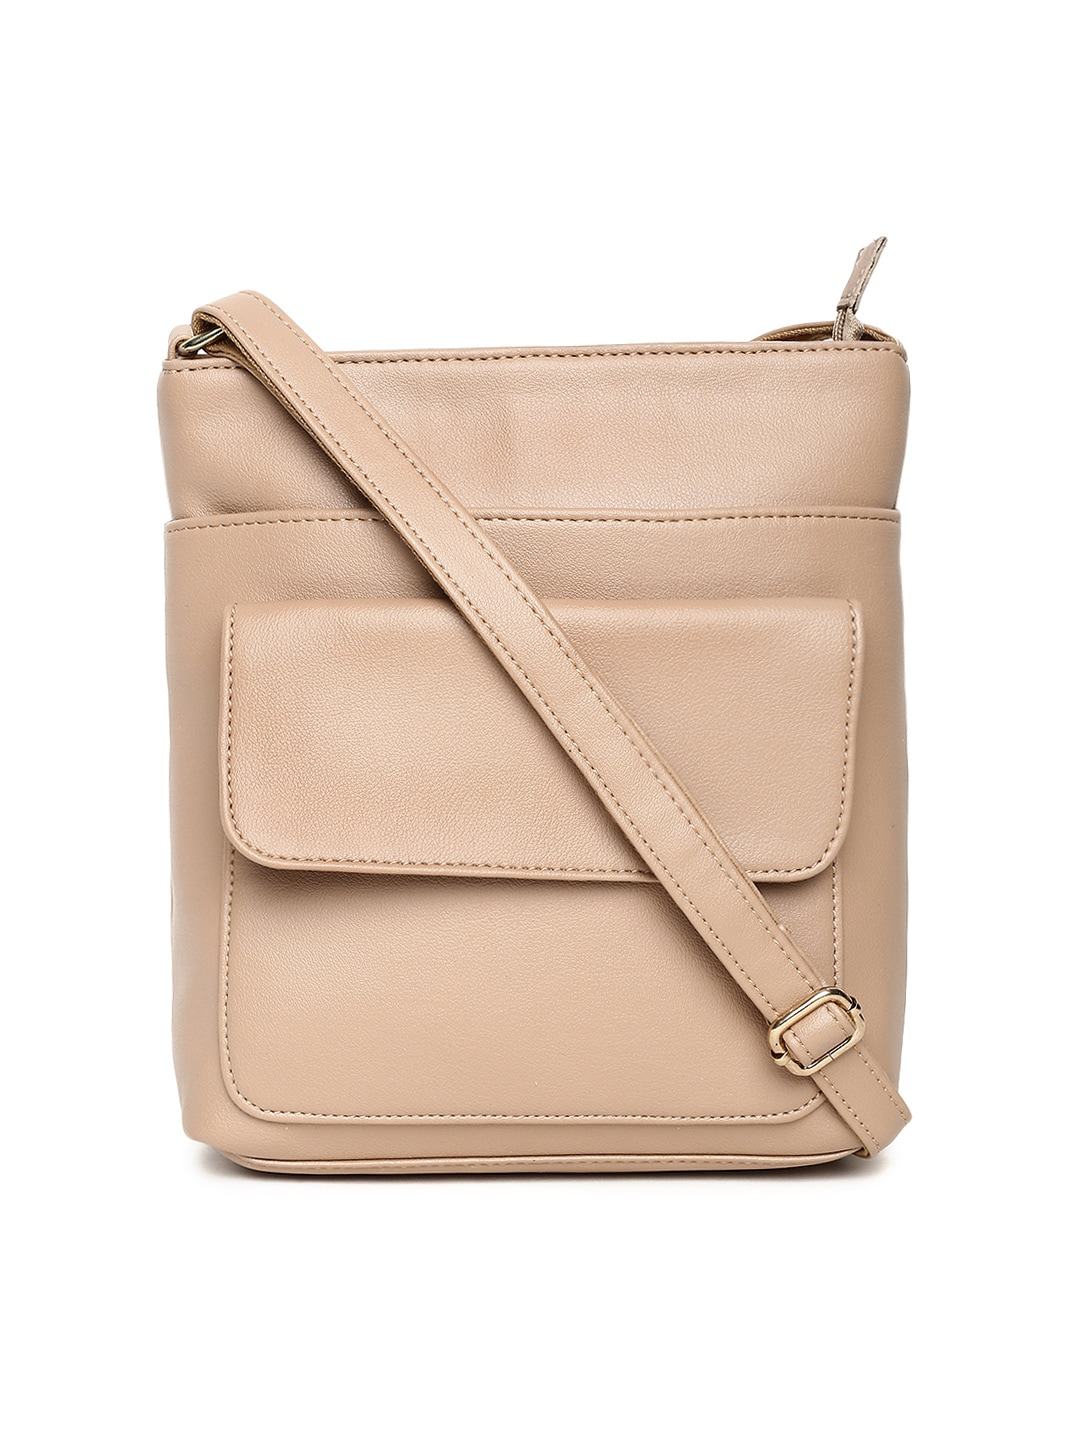 5367954138 Soft Leather Satchel Bags 2019